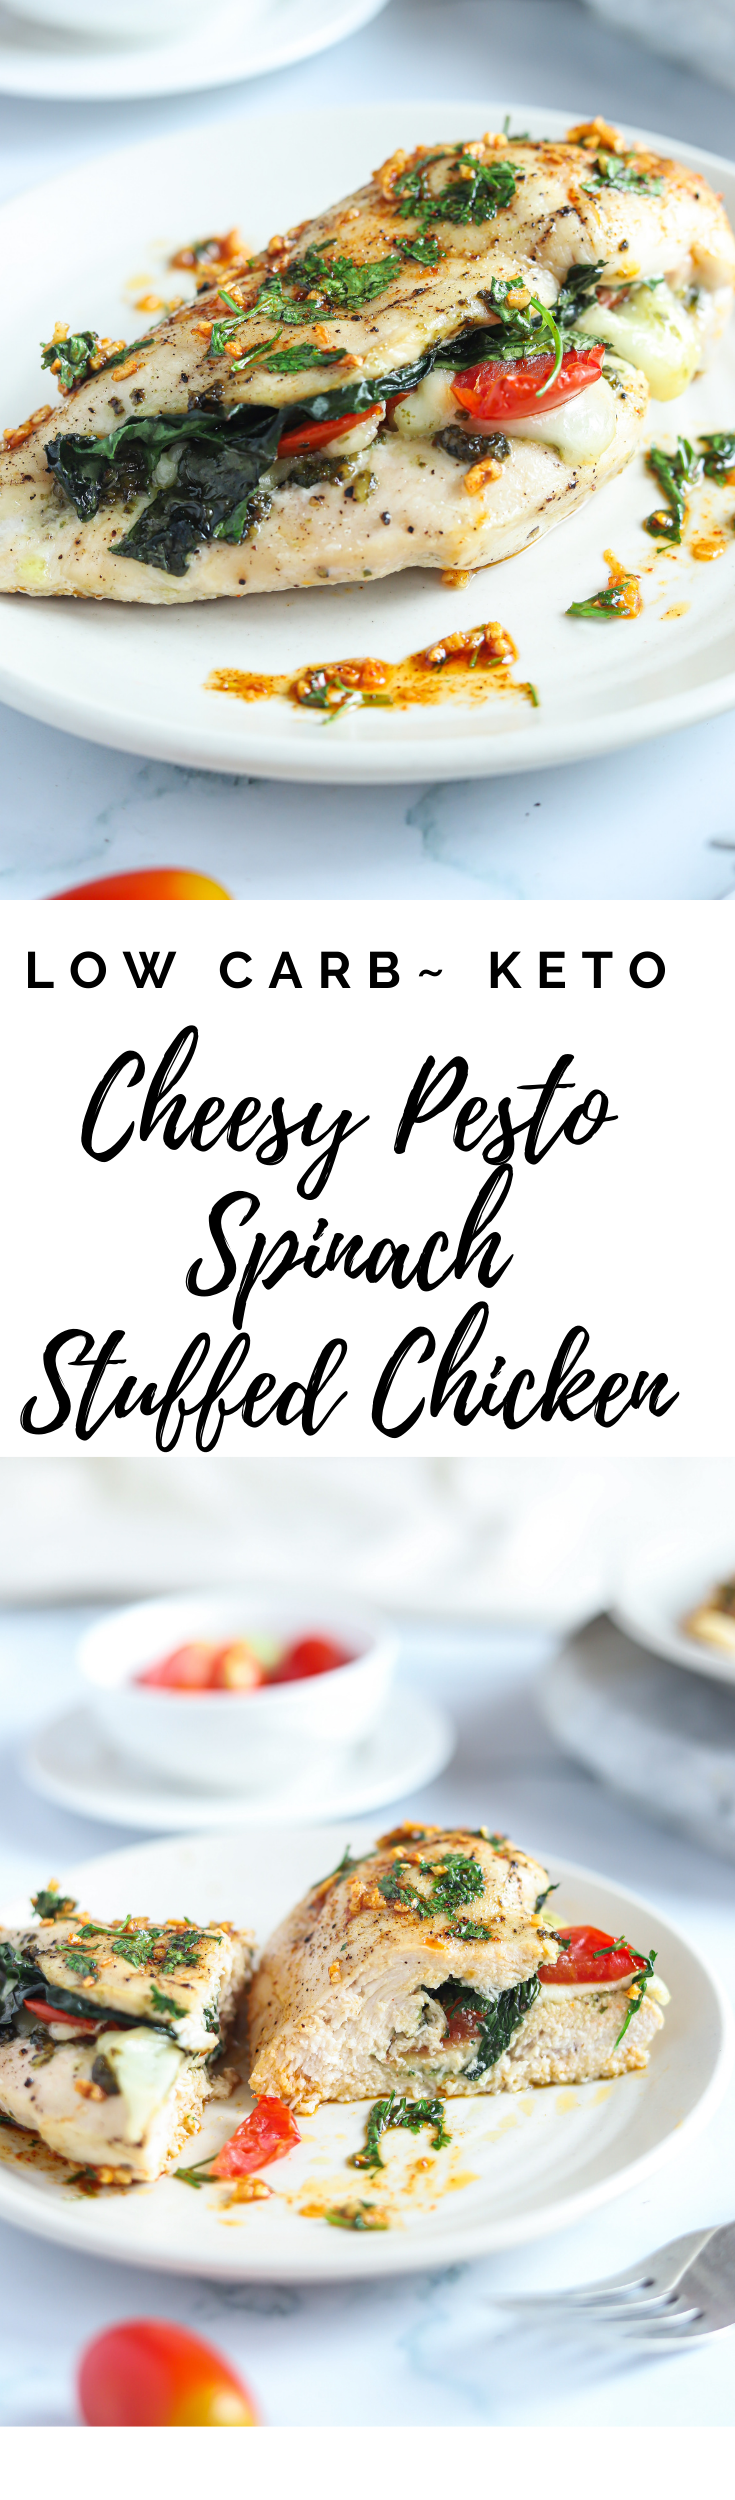 These Cheesy Pesto Spinach Stuffed Chicken Breasts from Lauren Kelly Nutrition are simple to make, healthy, low carb and delicious!